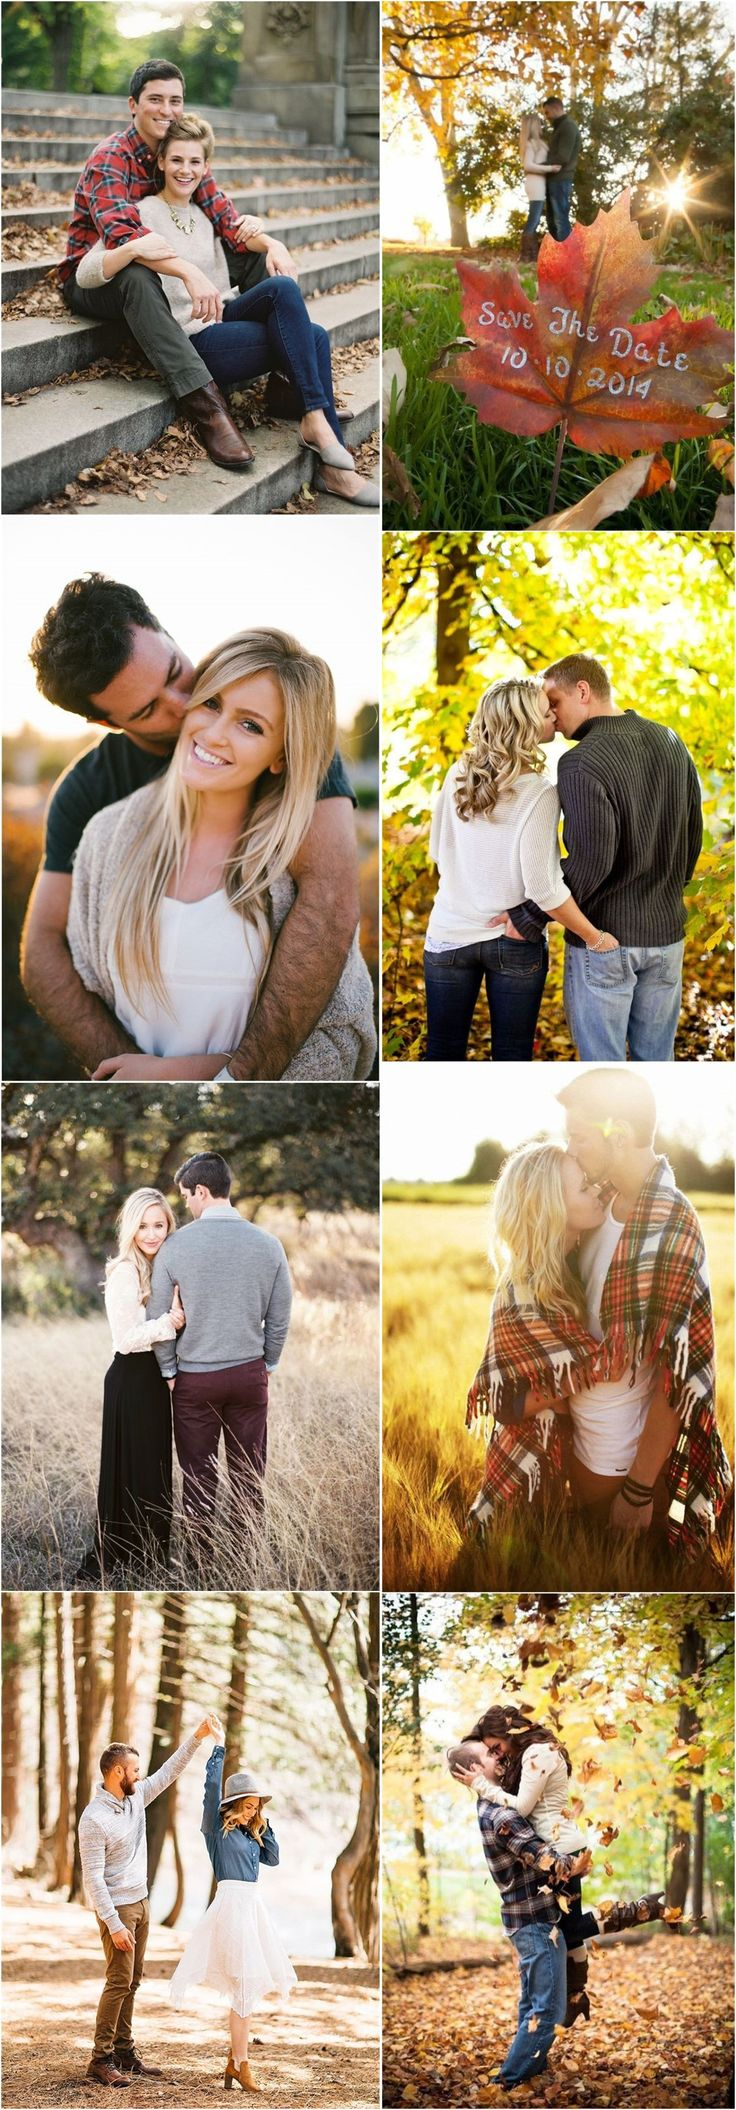 Engagement Photos » 23 Creative Fall    Engagement Photo Shoots Ideas I Should…